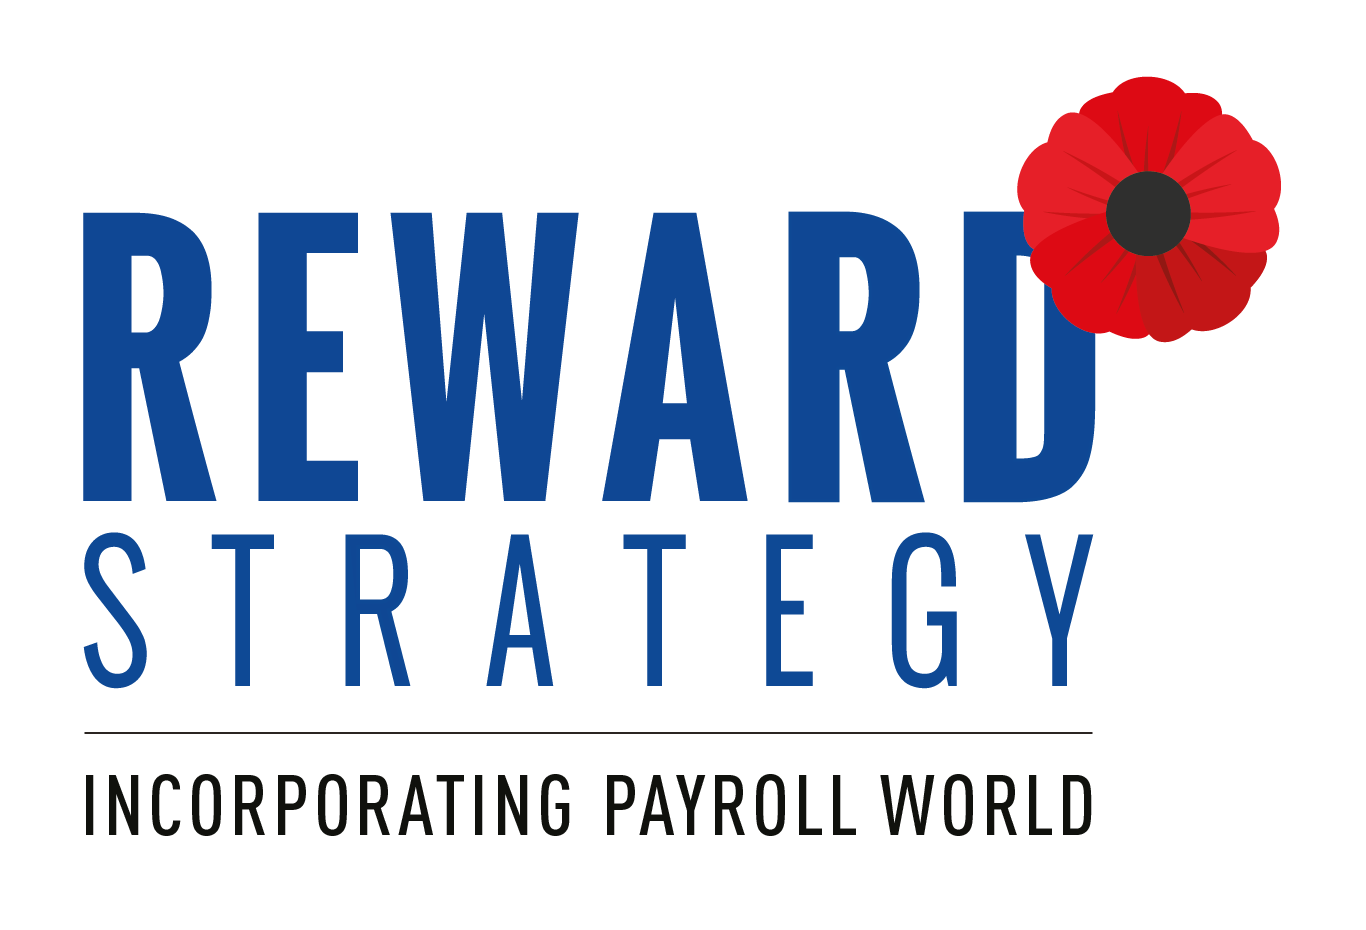 Reward Strategy. Incoporating Payroll World.